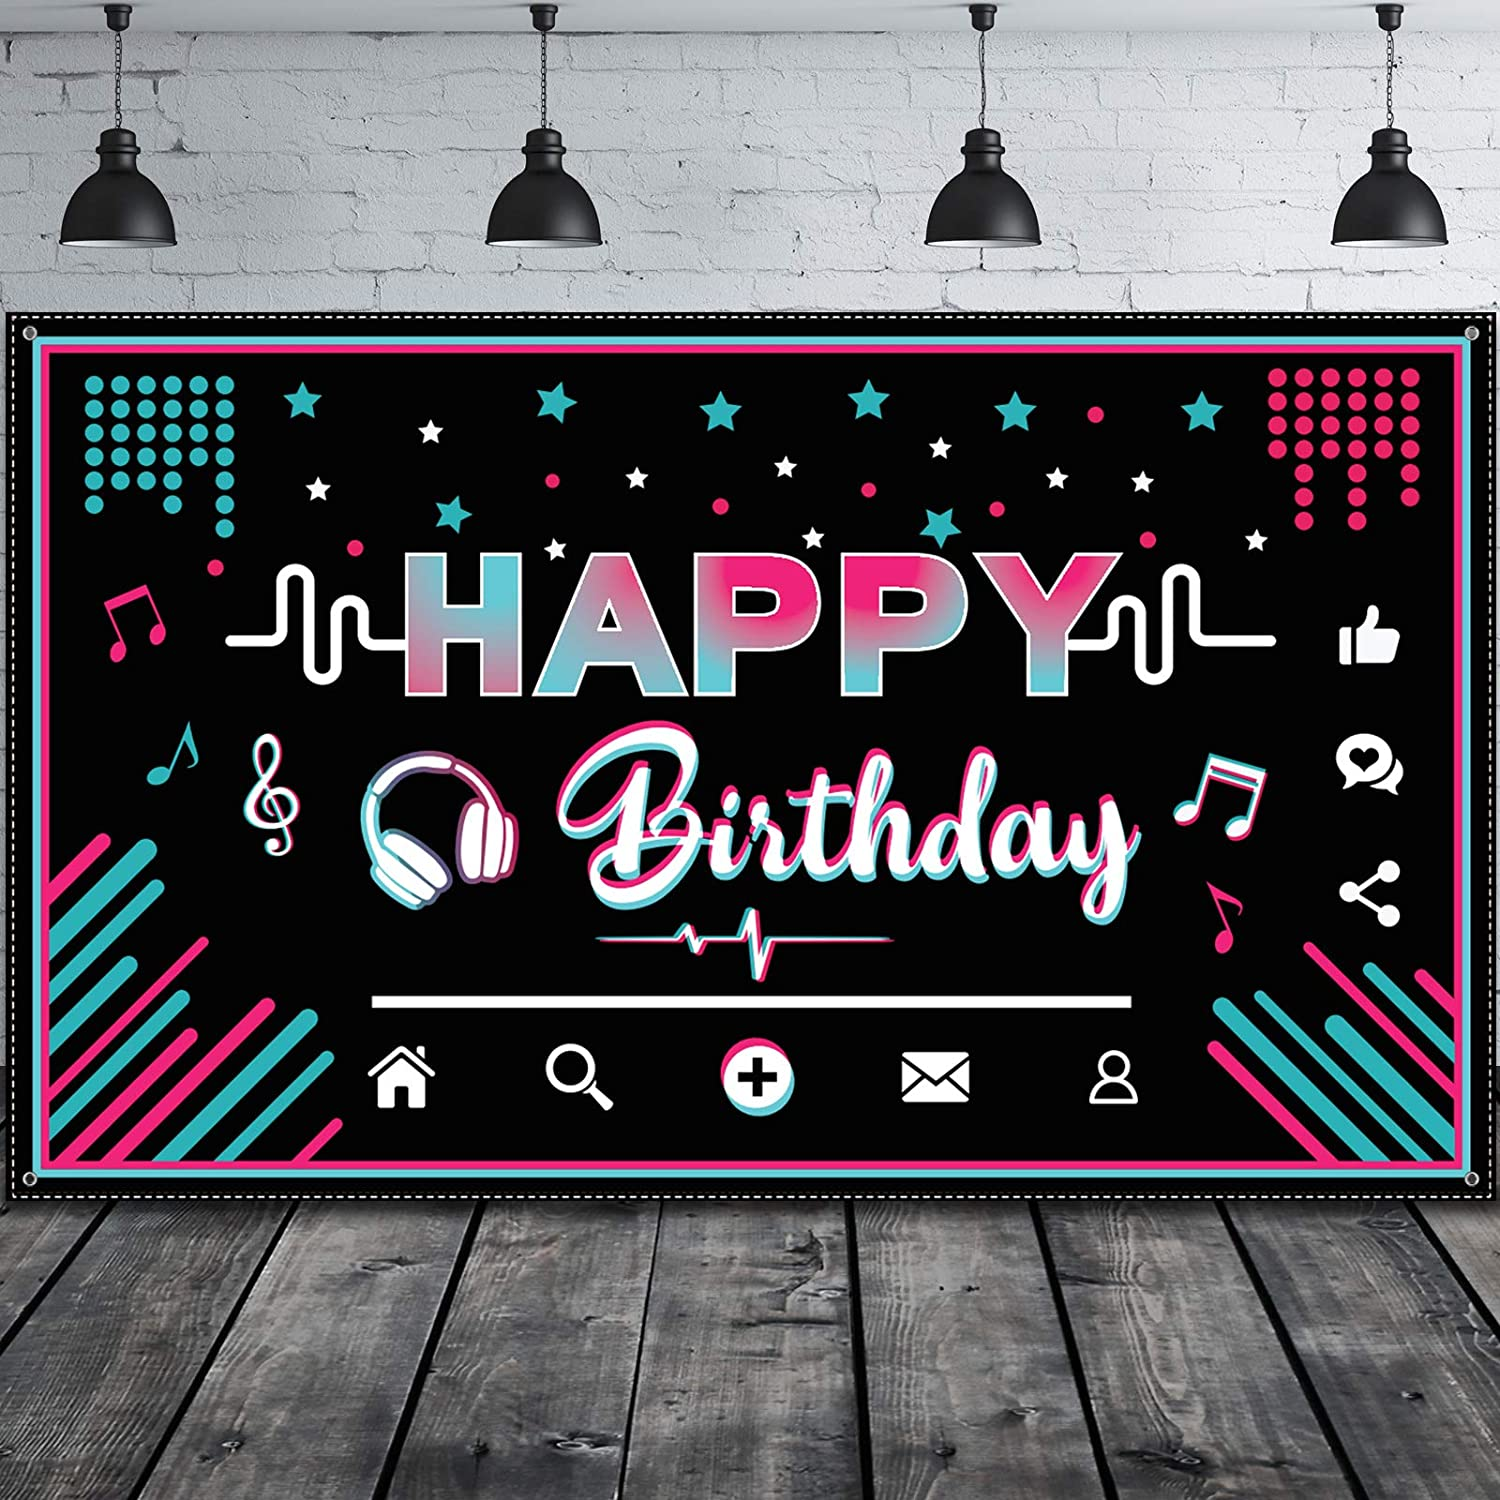 Happy Birthday Backdrop Large Fabric Music Party Background Photo Booth Banner Photography Party Decoration Supplies for Teens Social Media Theme Birthday Party, 73 x 43 Inches